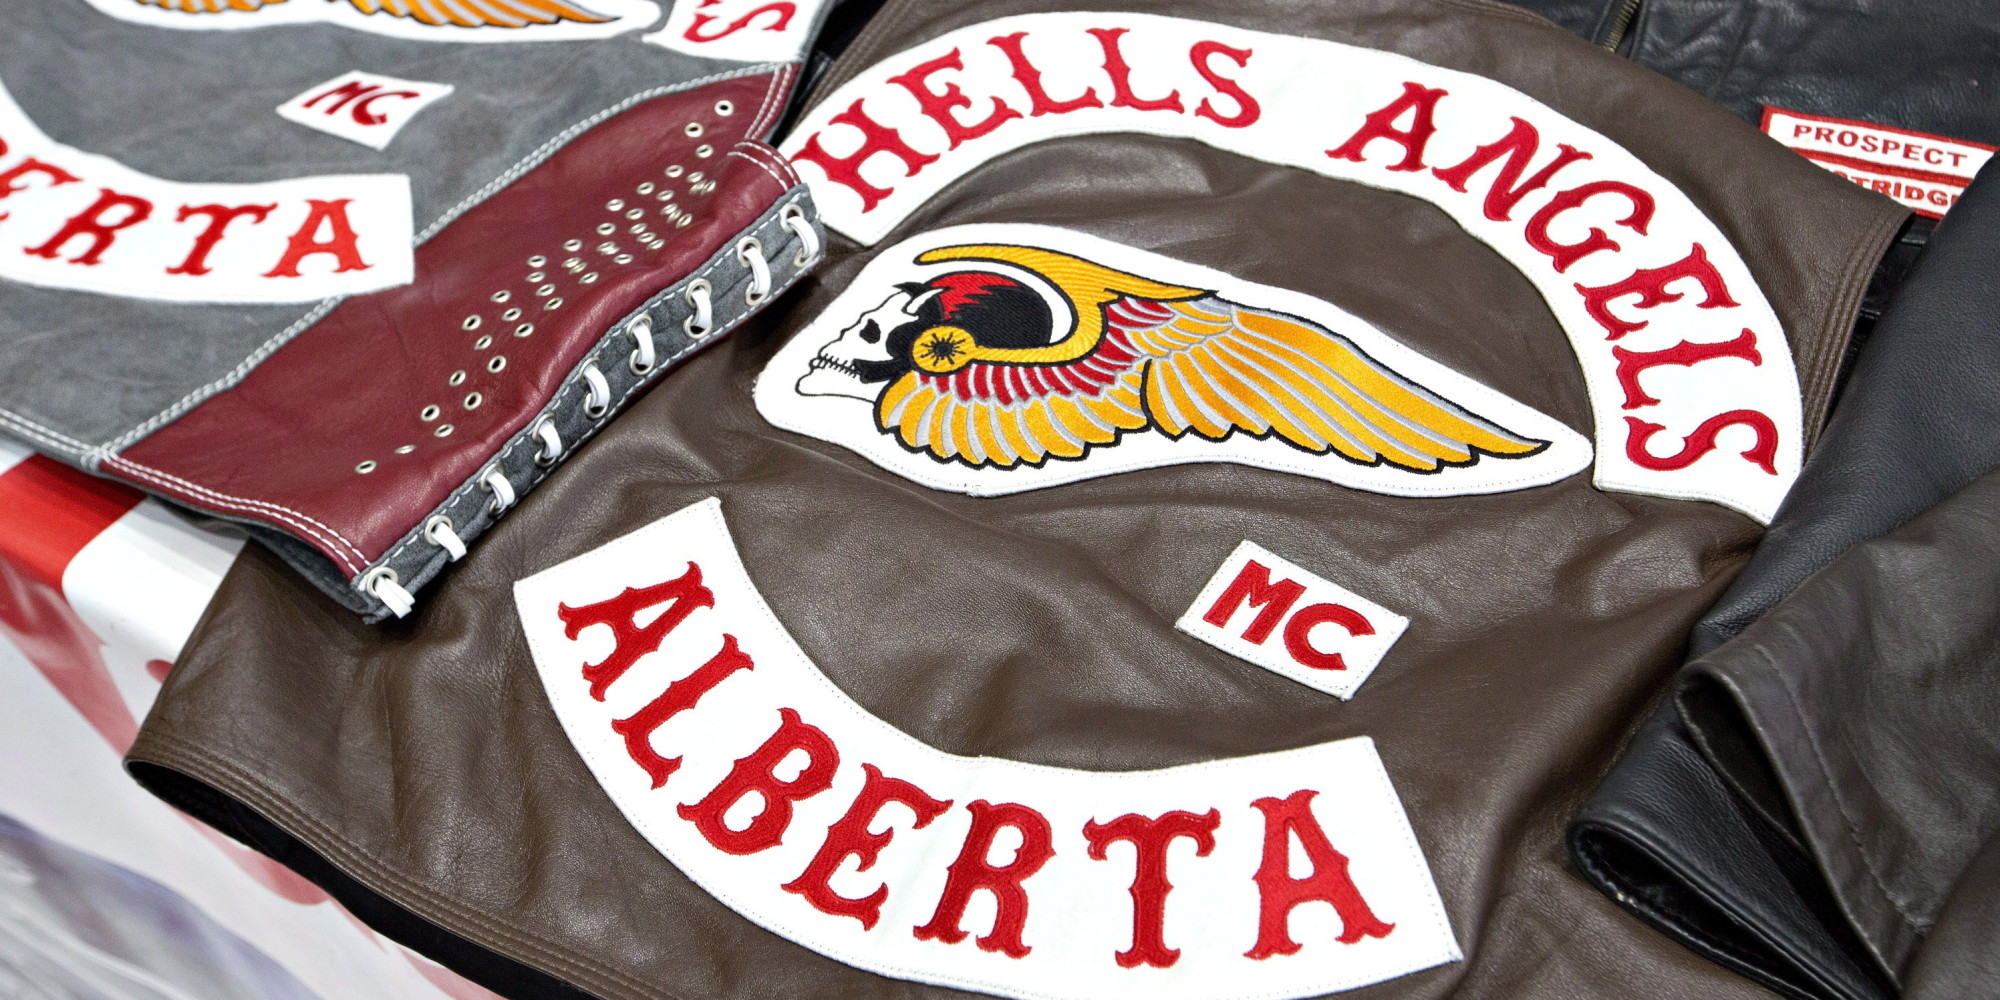 hells angels organized crime The hells angels are back  hells angels are back, bigger than  the sq now considers the hells angels and its training clubs the top organized crime group in.